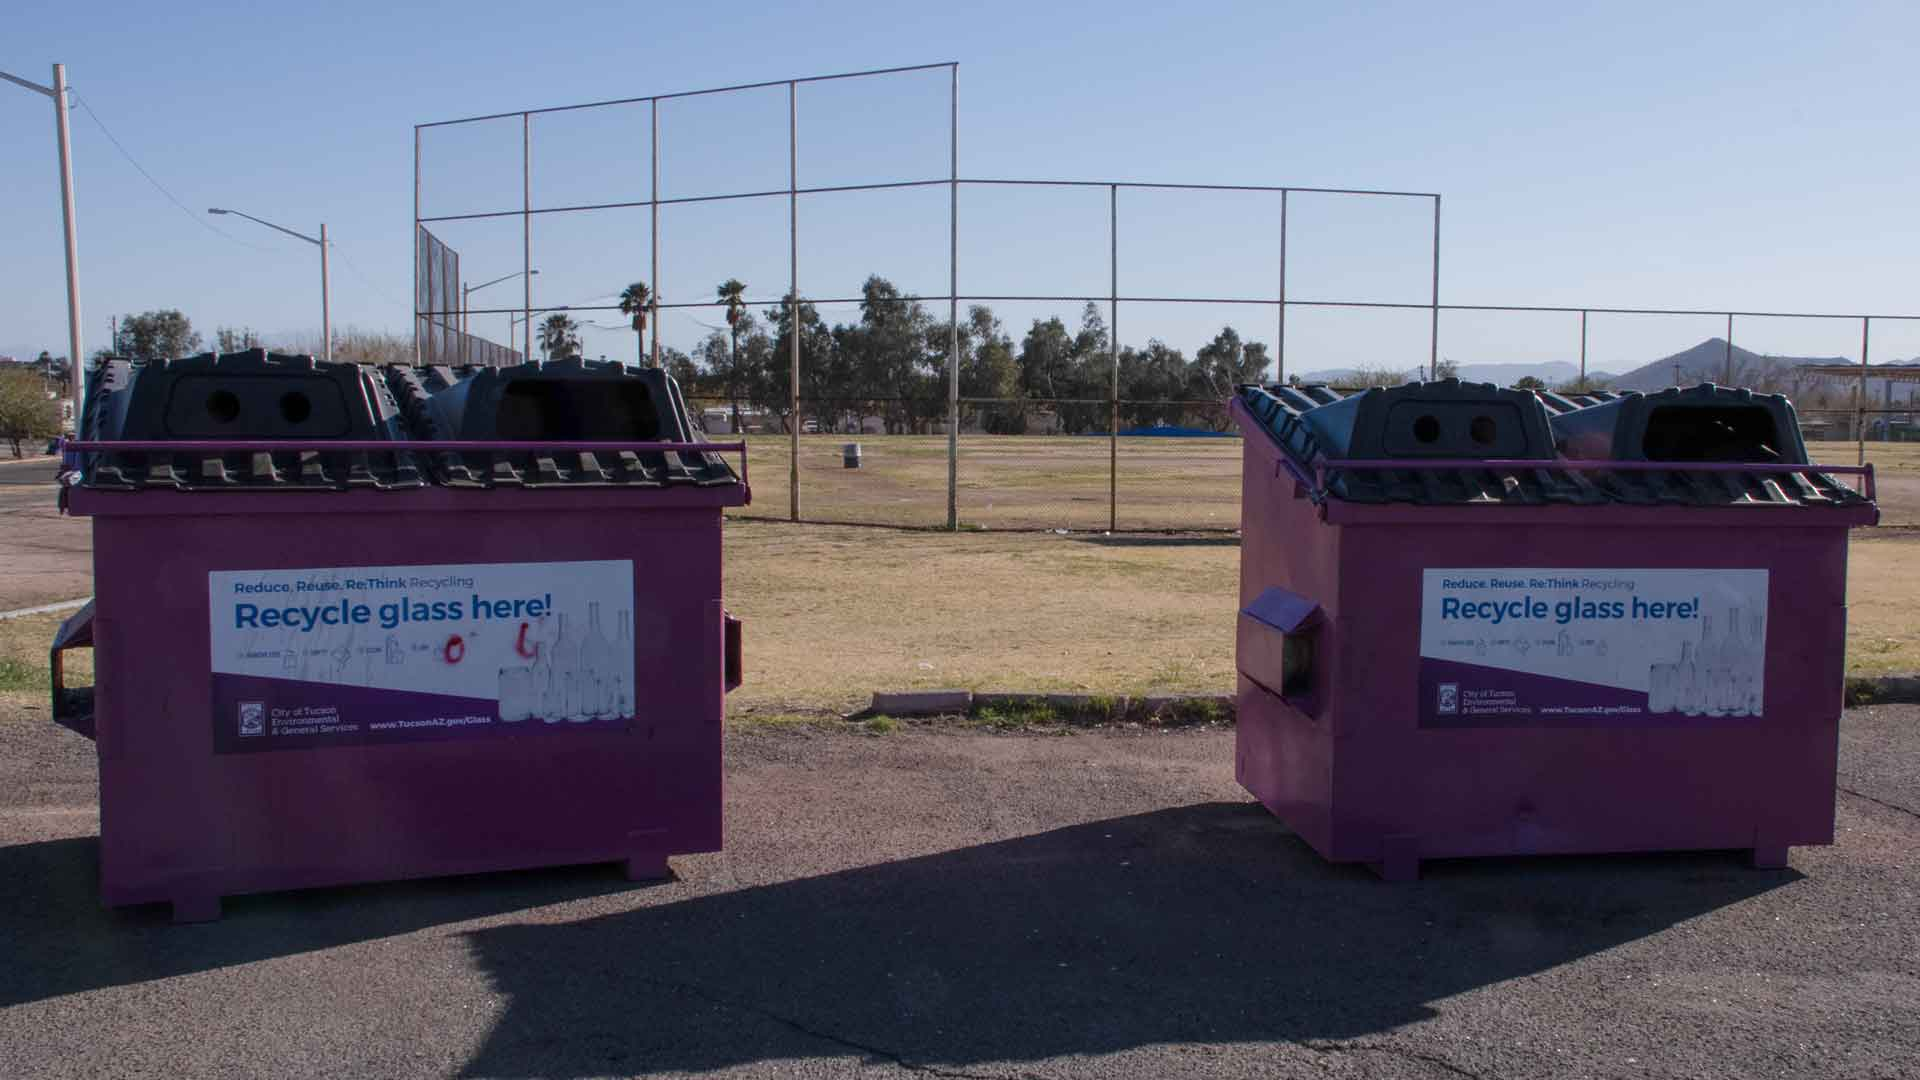 The City of Tucson now requires glass for recycling to be placed in bins, not curbside containers.